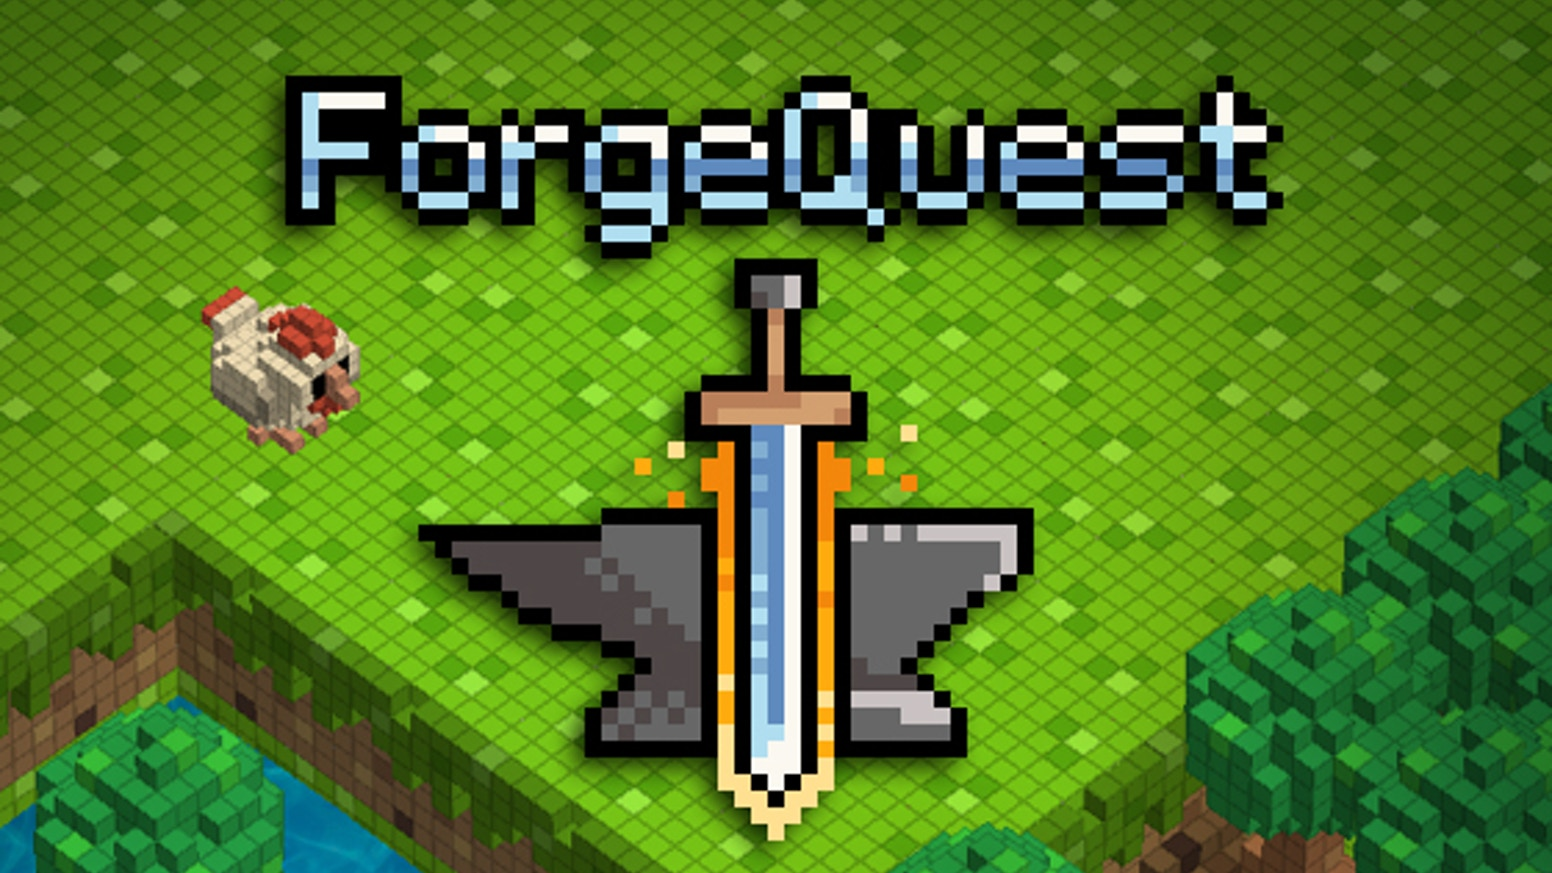 Forge Quest is a dungeon crawling rpg set in a voxel world. Explore the  land full of chickens on a light hearted quest to become a hero.